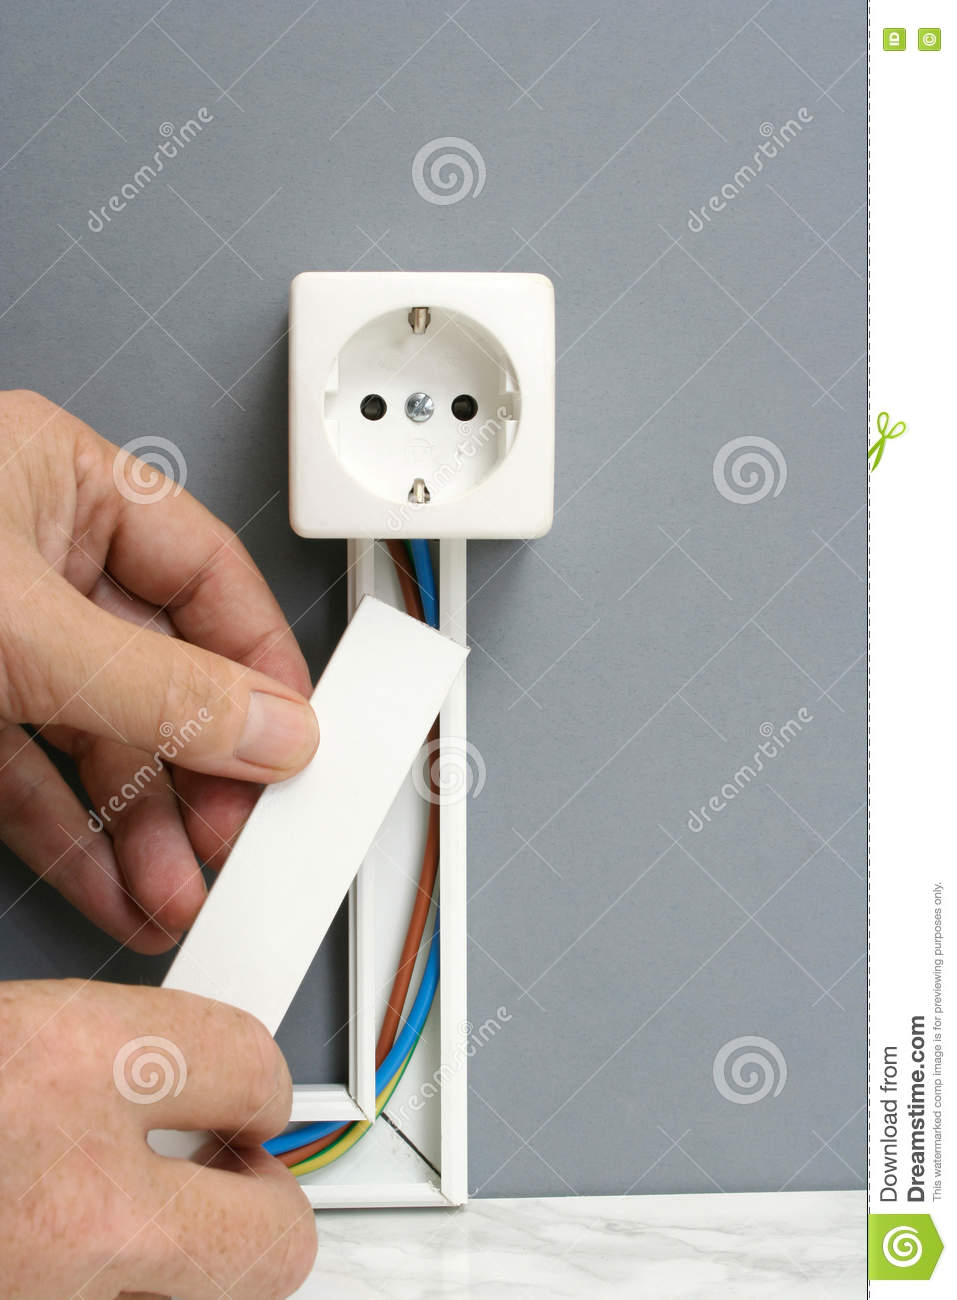 Installing A Power Outlet Stock Photo Image Of Nobody 73580194 Wires When Electrical Receptacles Wall Plug Outlets With Surface Mount Electric Wiring Channel